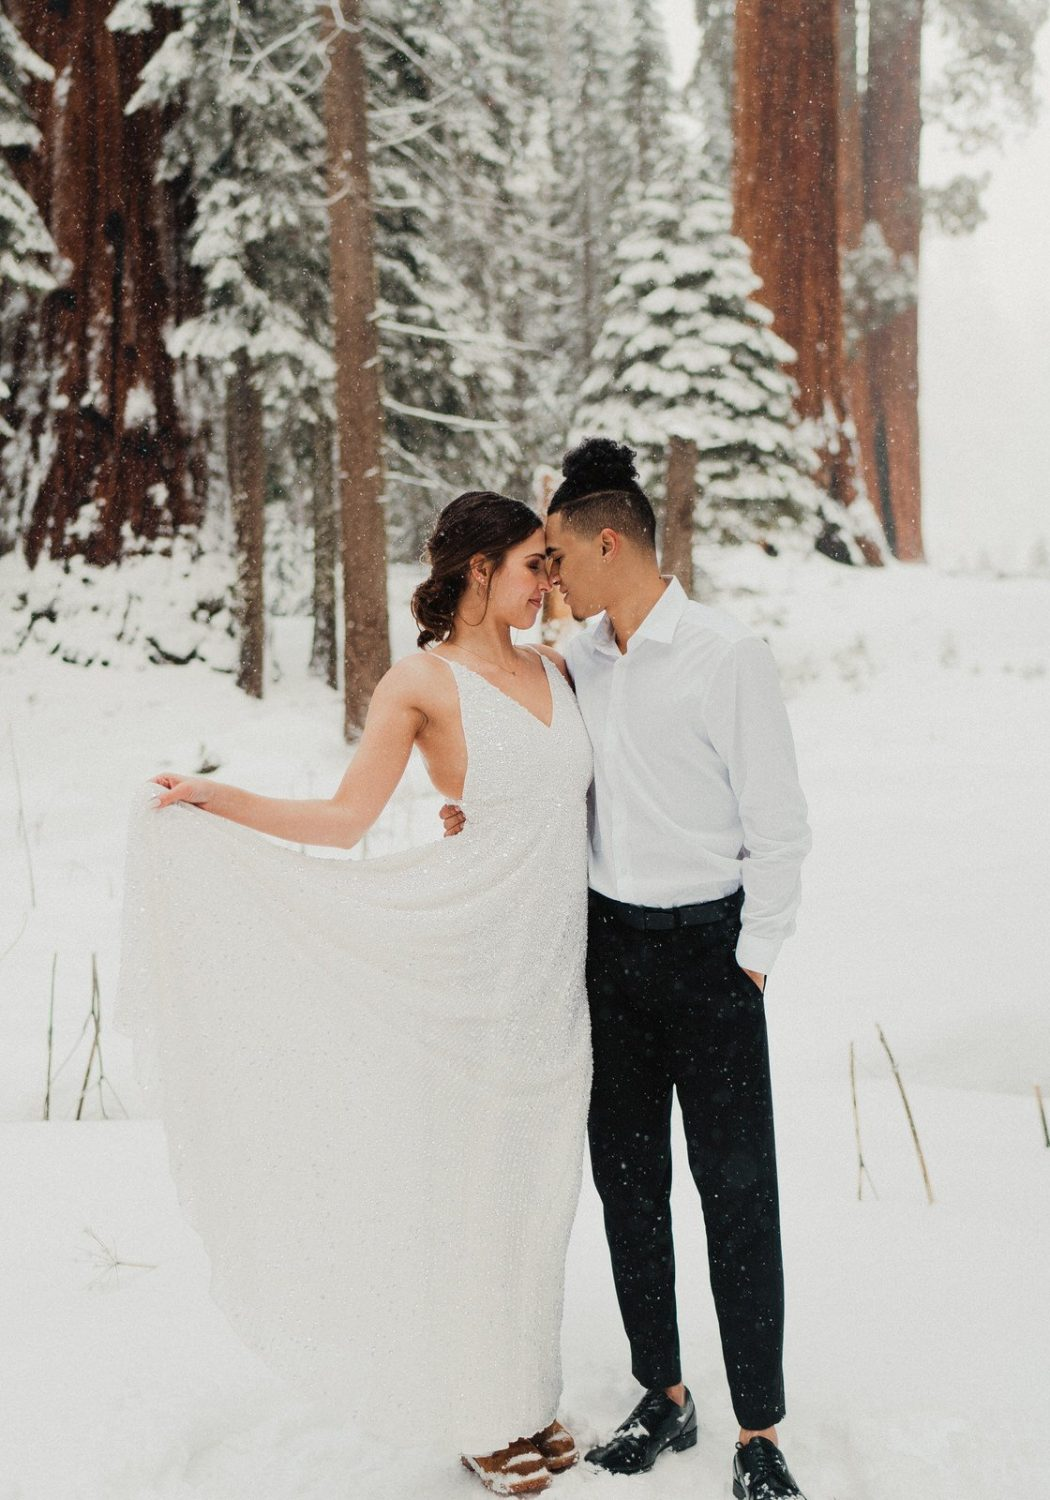 Sequoia National Park Winter Elopement | Hayley + Justin